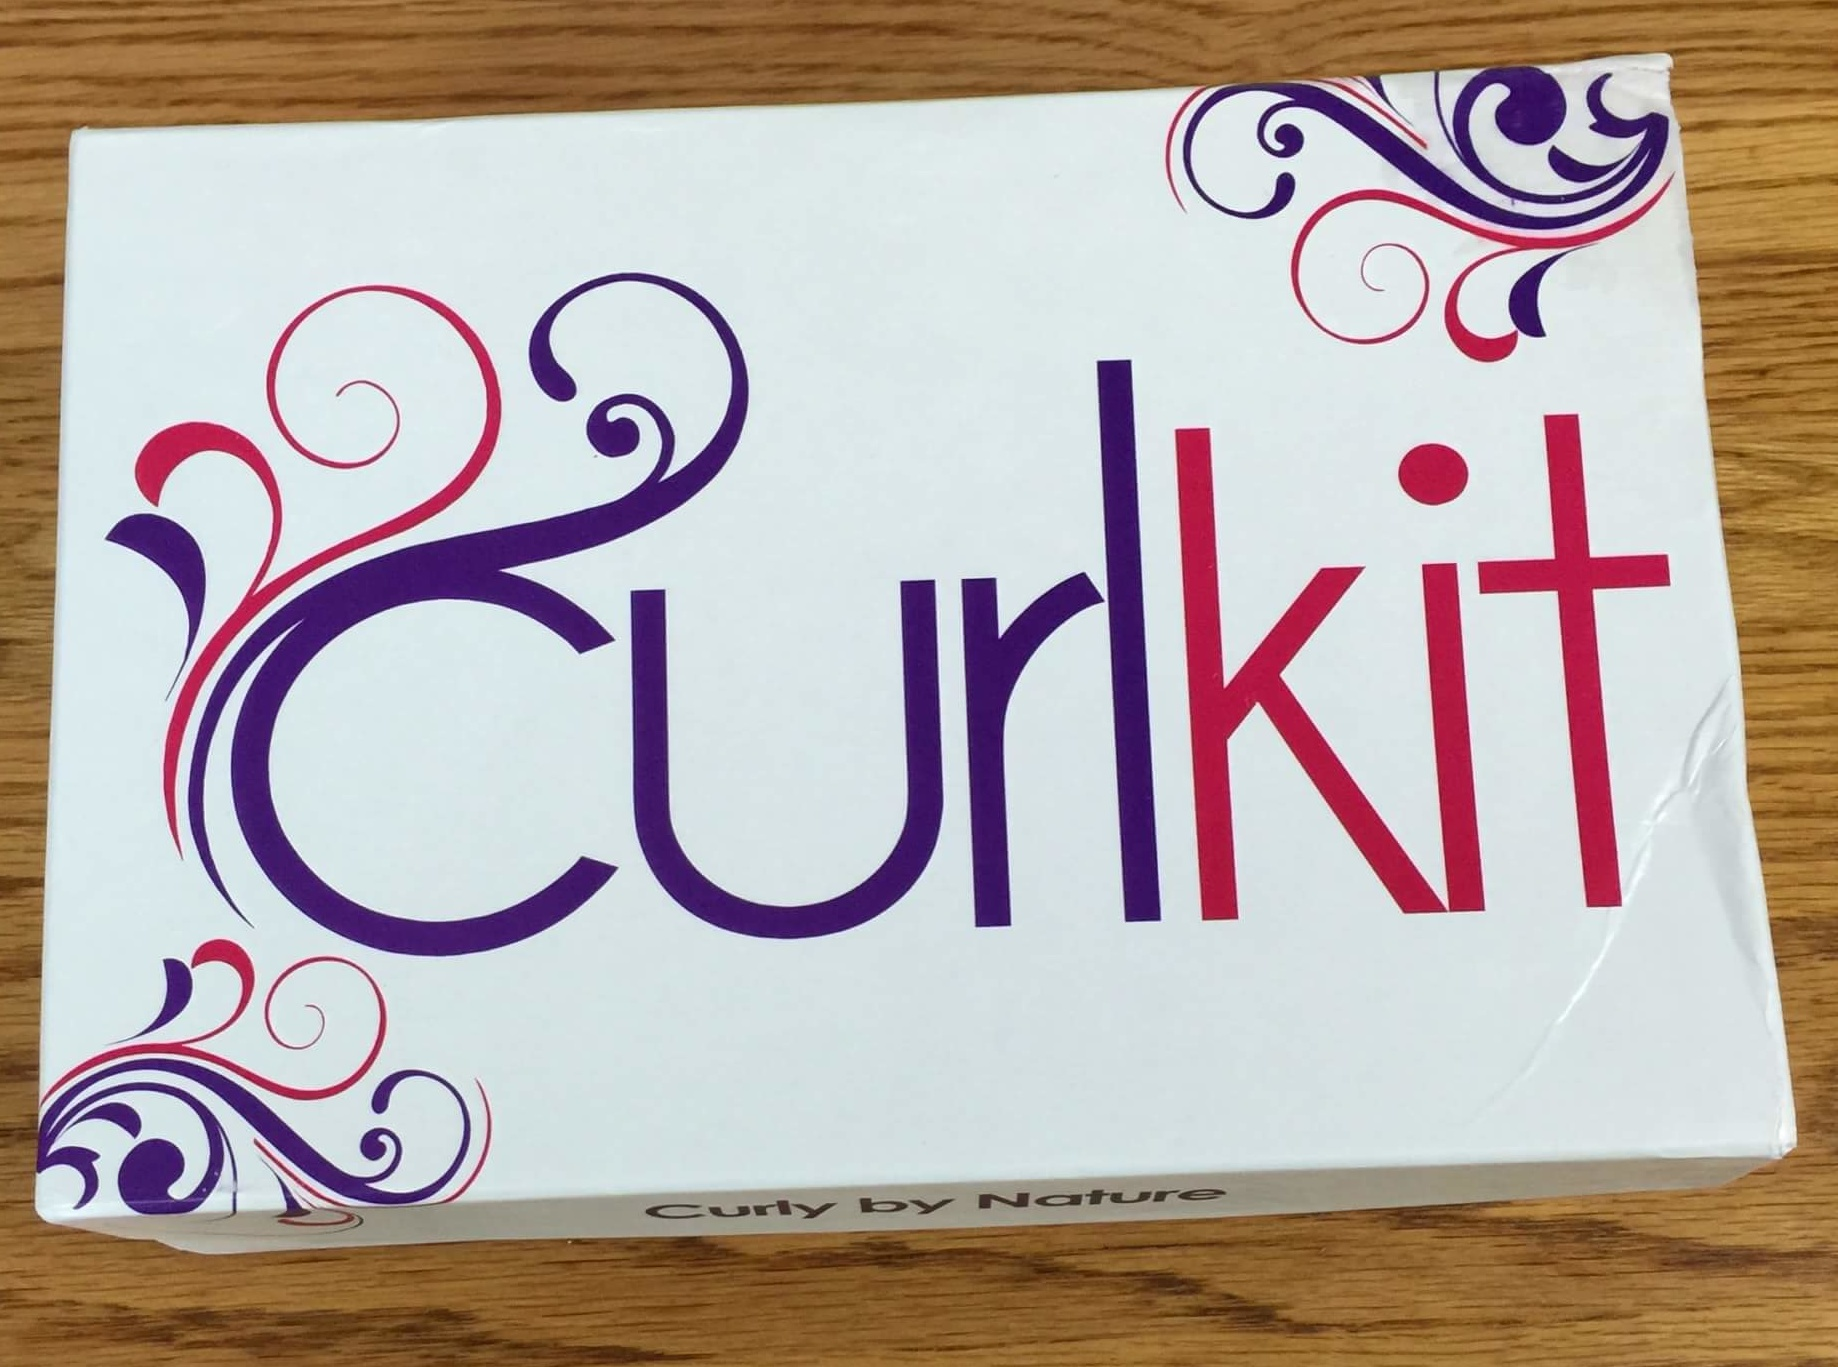 CurlKit May 2016 Subscription Box Review & Coupon